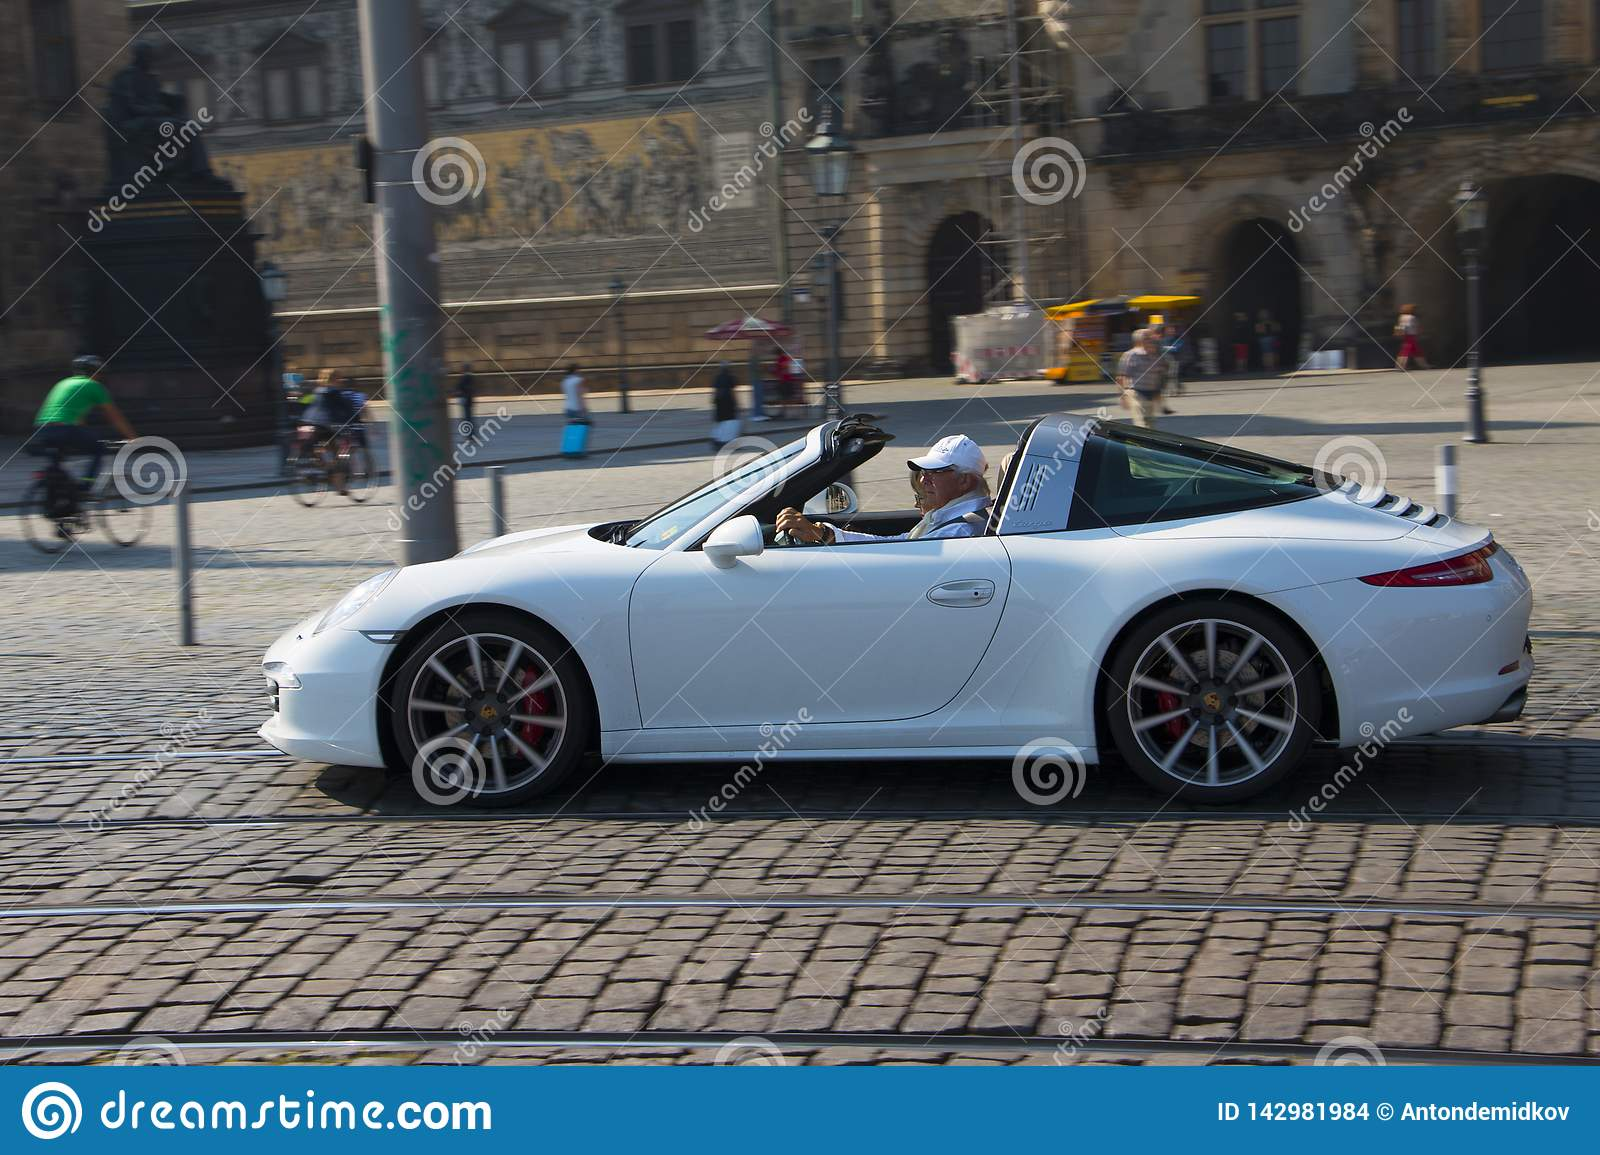 Dresden, Germany - July, 2015: Old man rides his porsche.